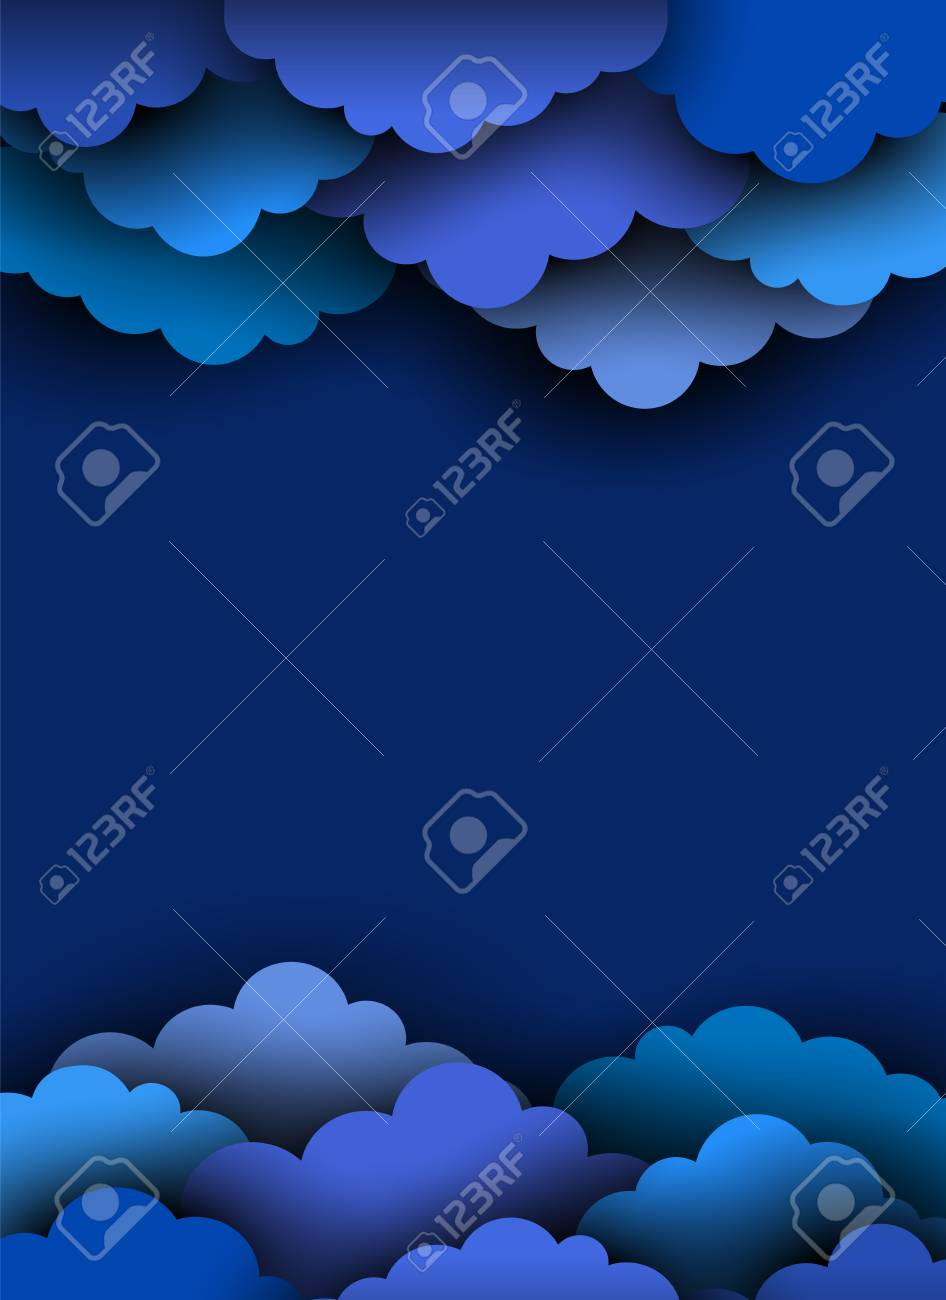 Blue Paper Cut Clouds On Dark Background Border For Design With